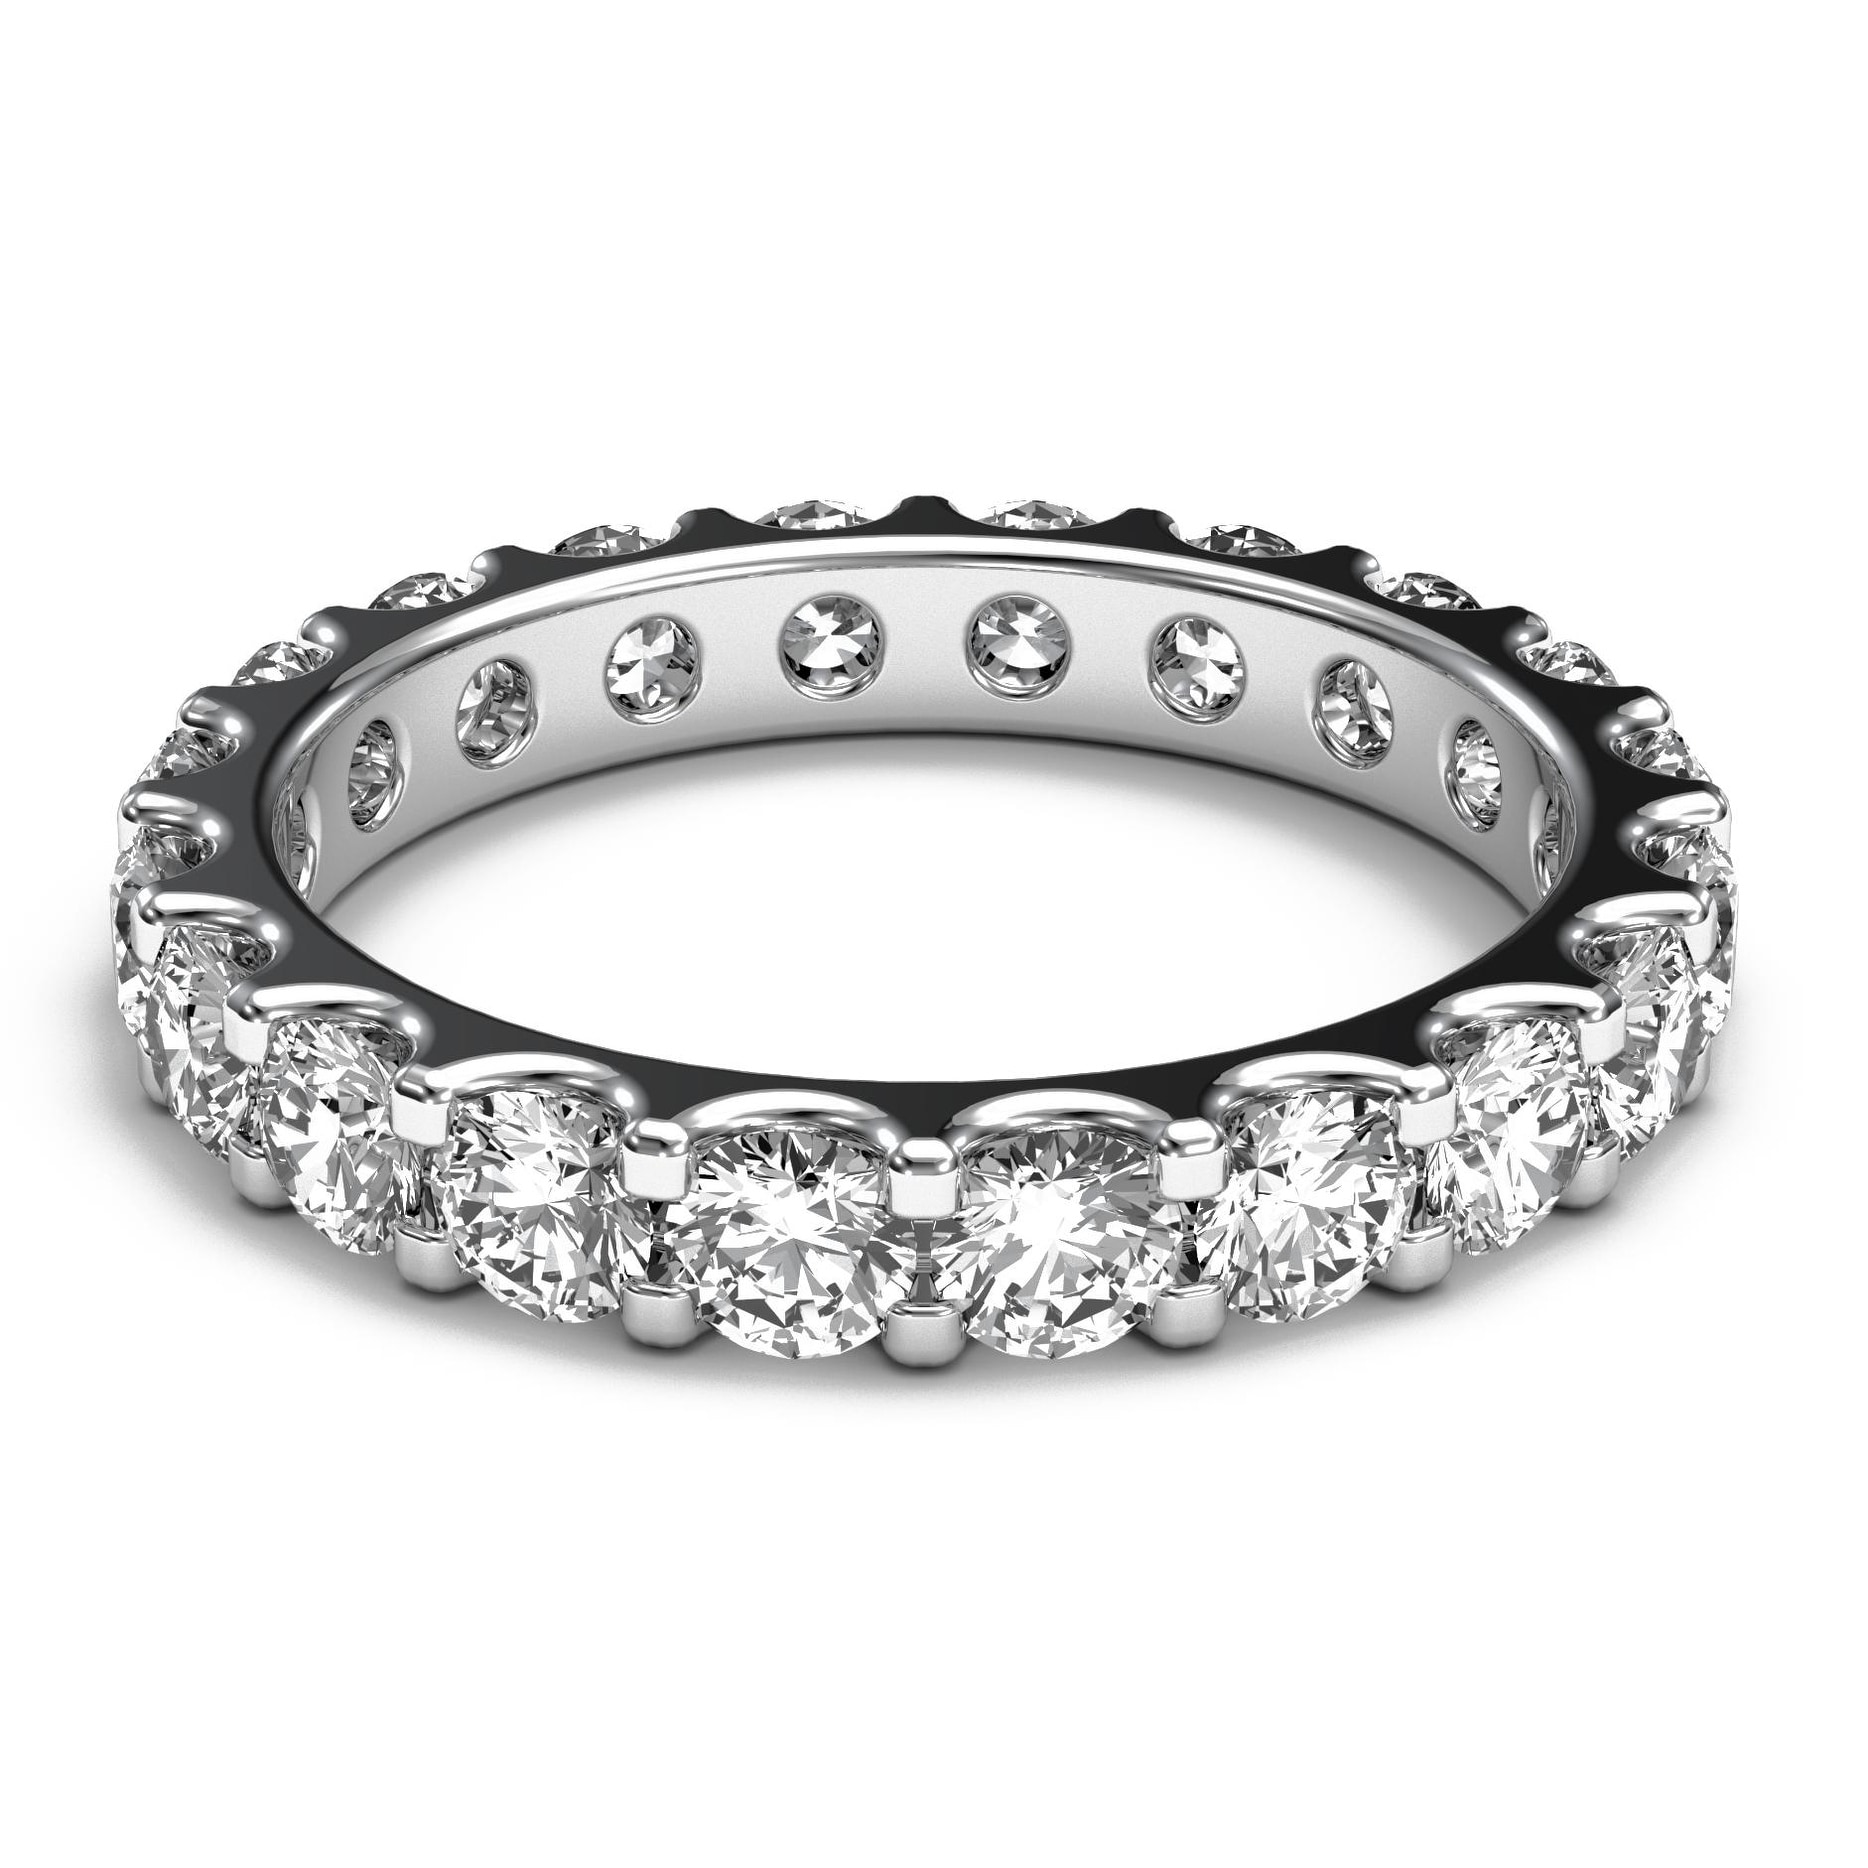 D-Color 2.00Ct Top Quality Round Shape Solitaire Wedding Ring In 14KT White Gold